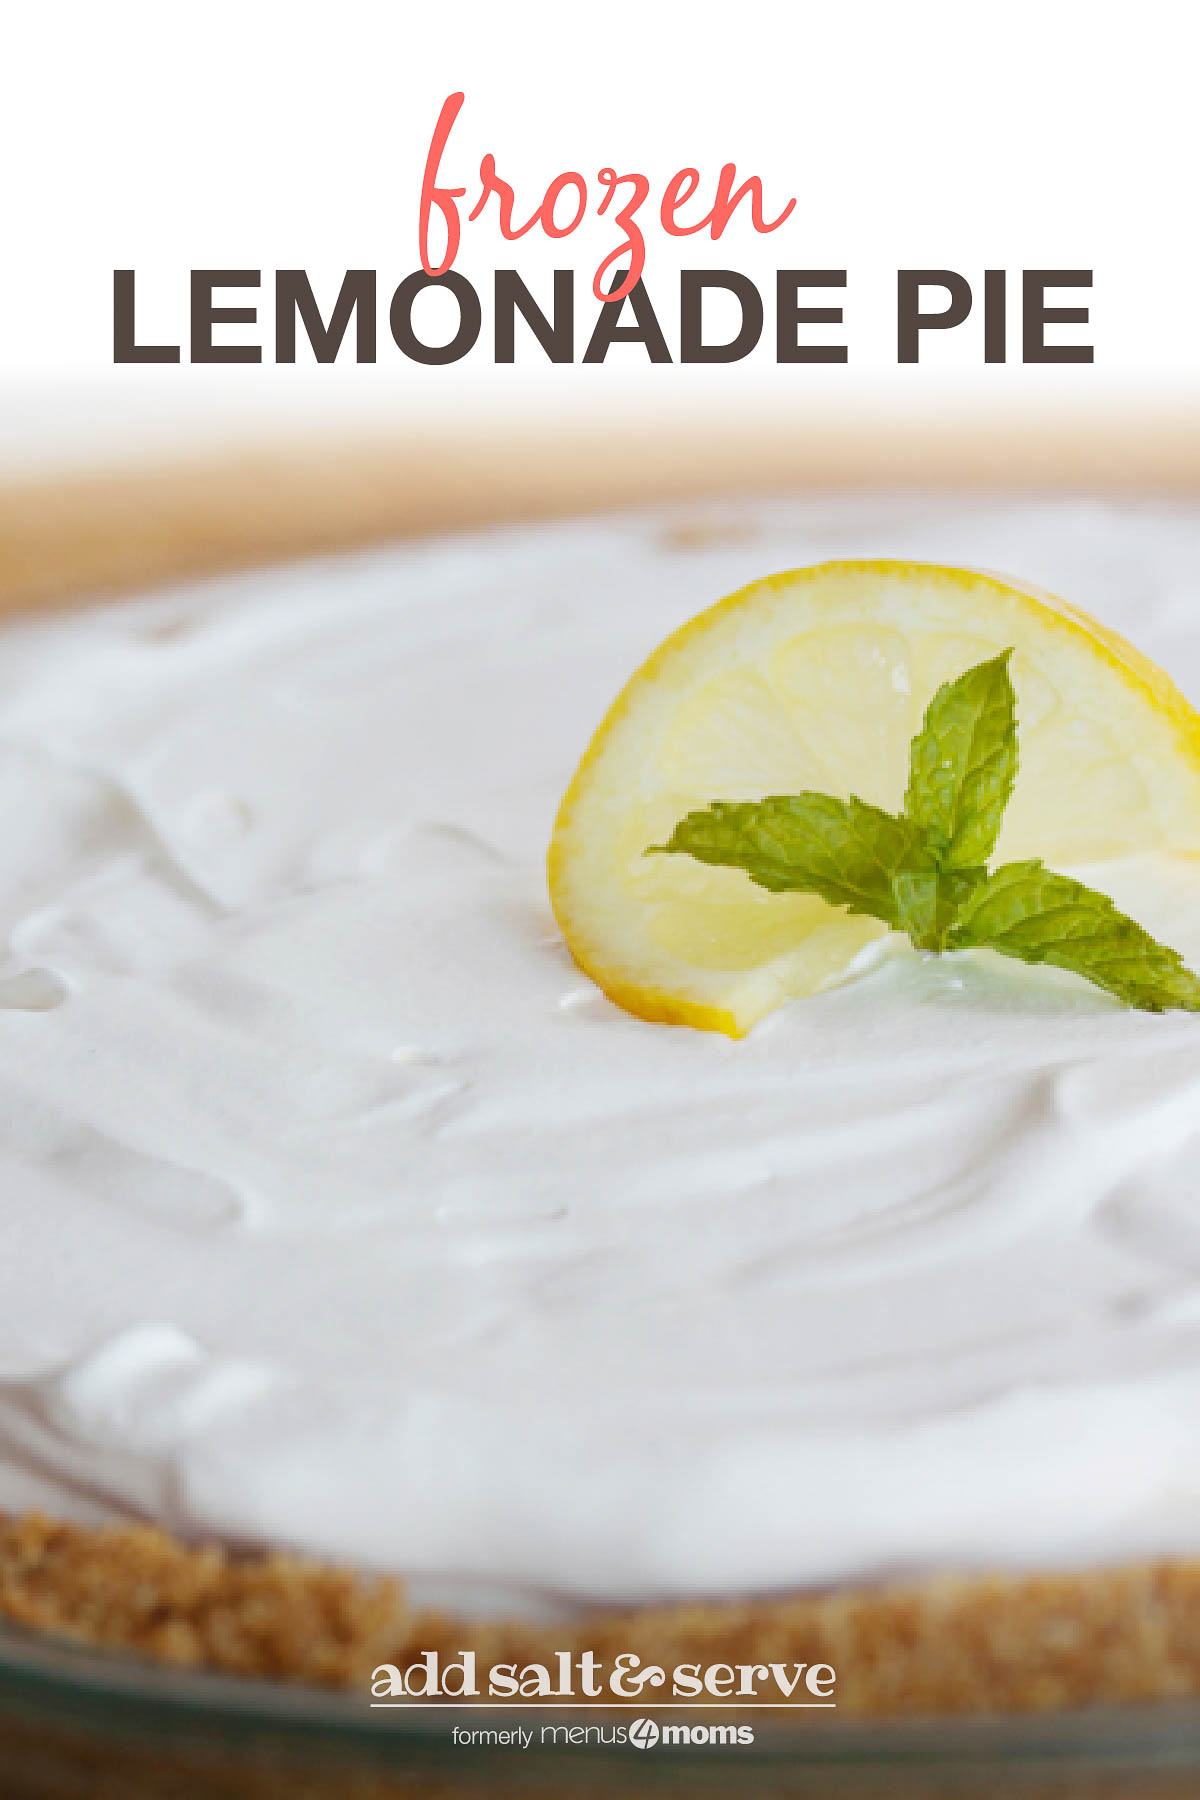 Pie with white frozen filling and graham cracker crust garnished with a twisted slice of lemon and mint with text Frozen Lemonade Pie